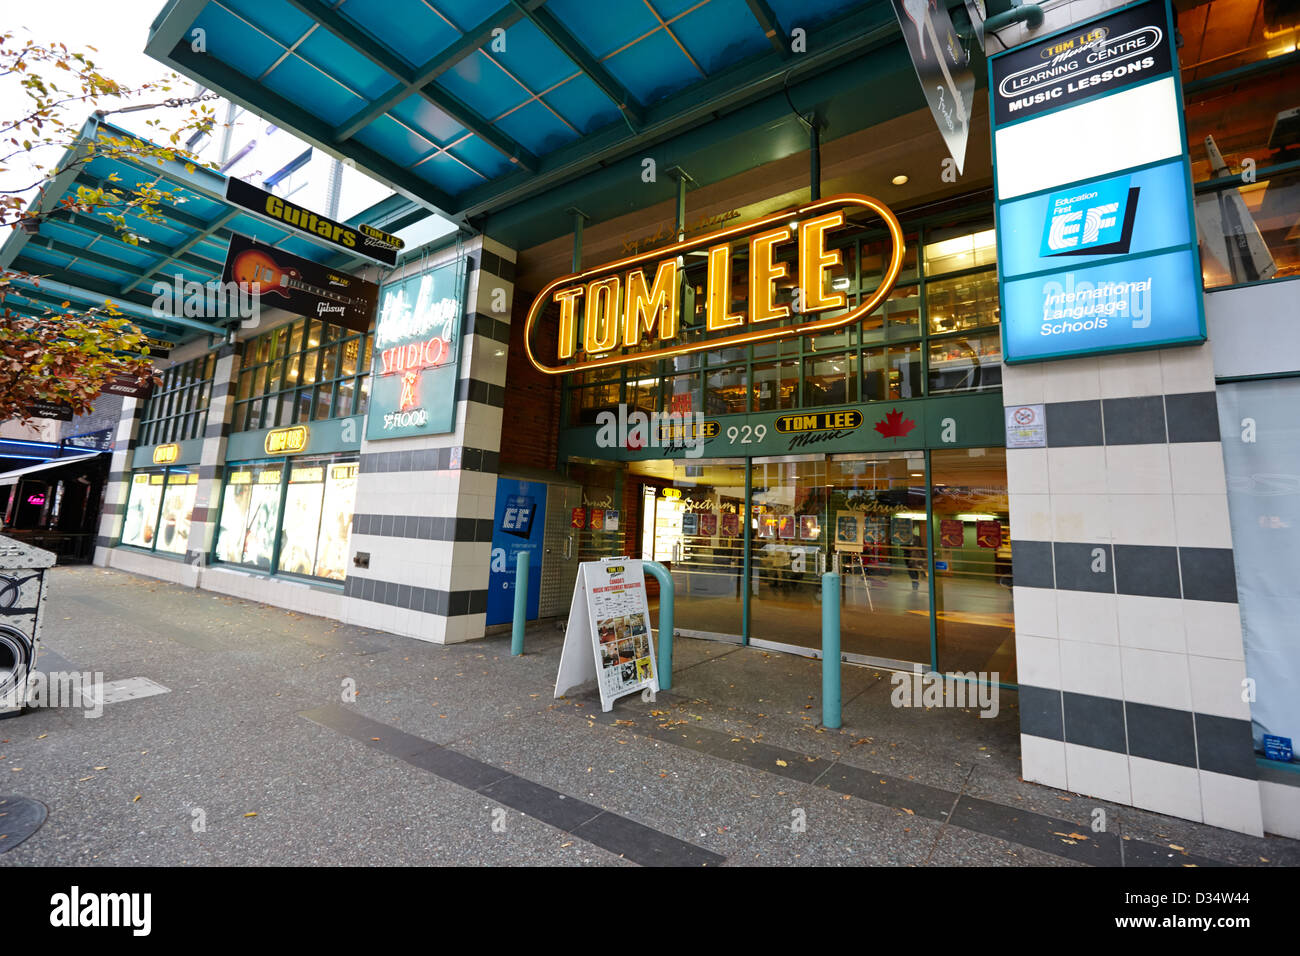 tom lee music store Vancouver BC Canada - Stock Image